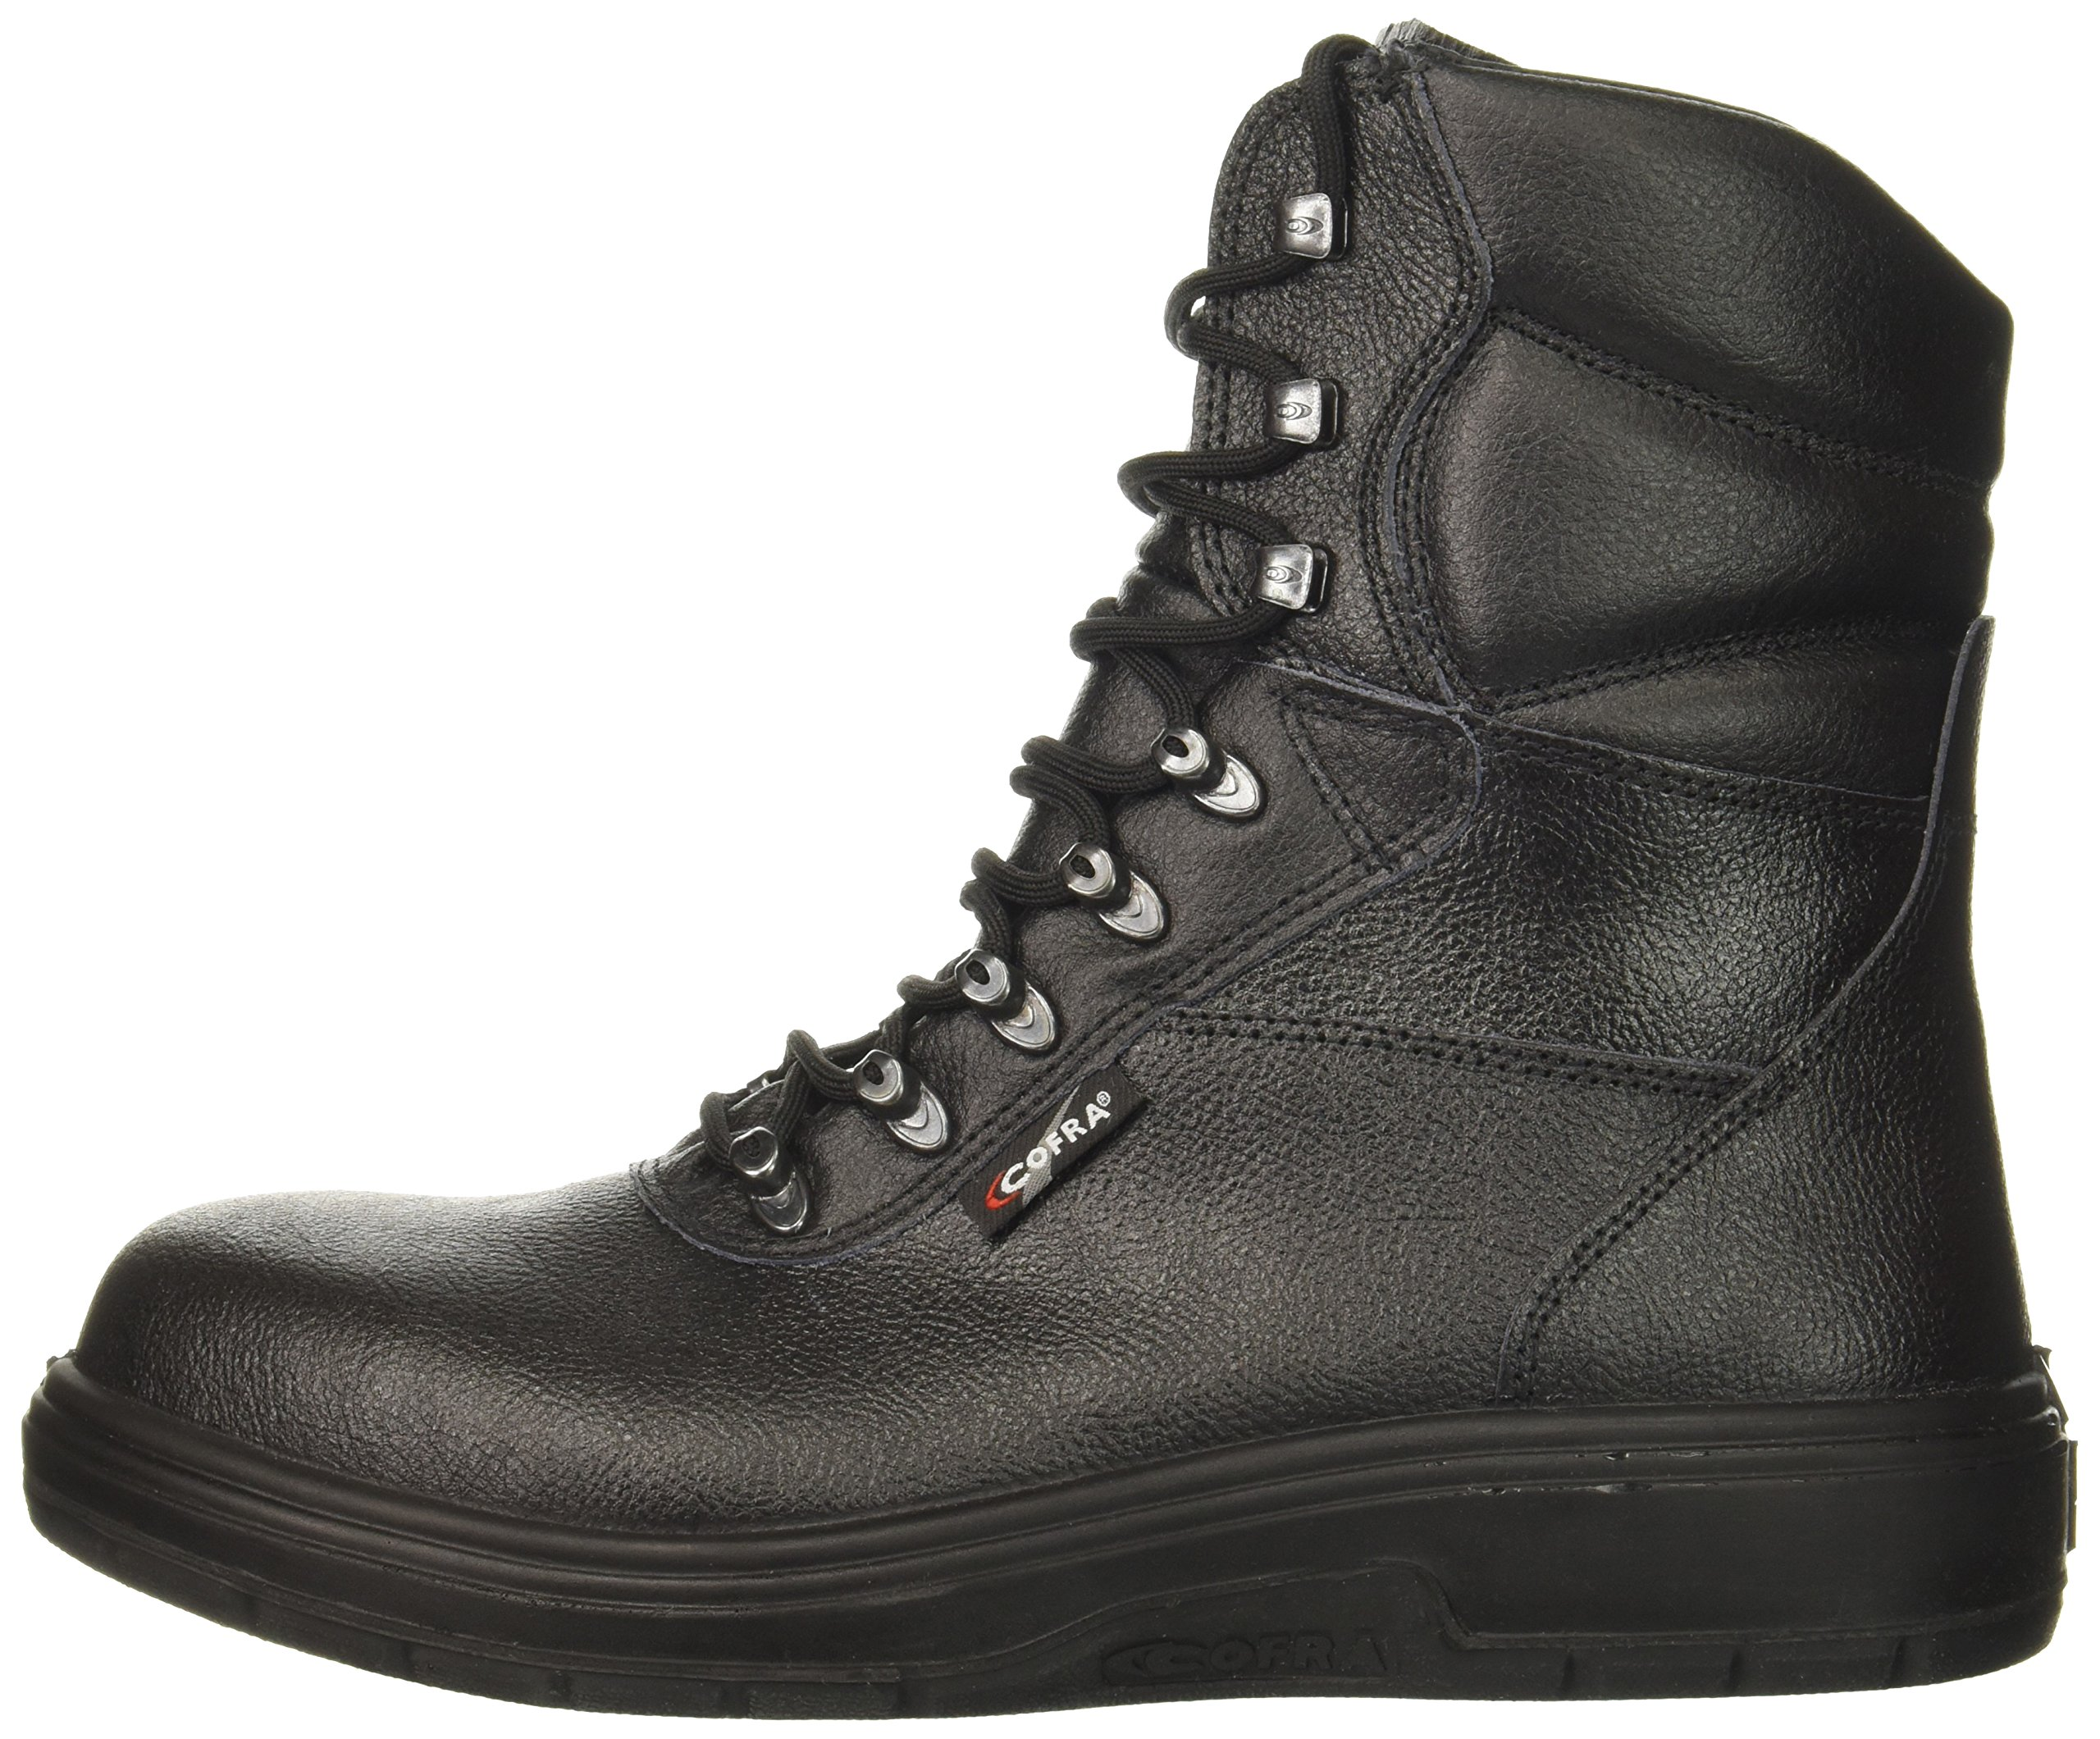 Cofra 82120-CU1.W11 Us Road EH PR Safety Boots, 11, Black by Cofra (Image #5)